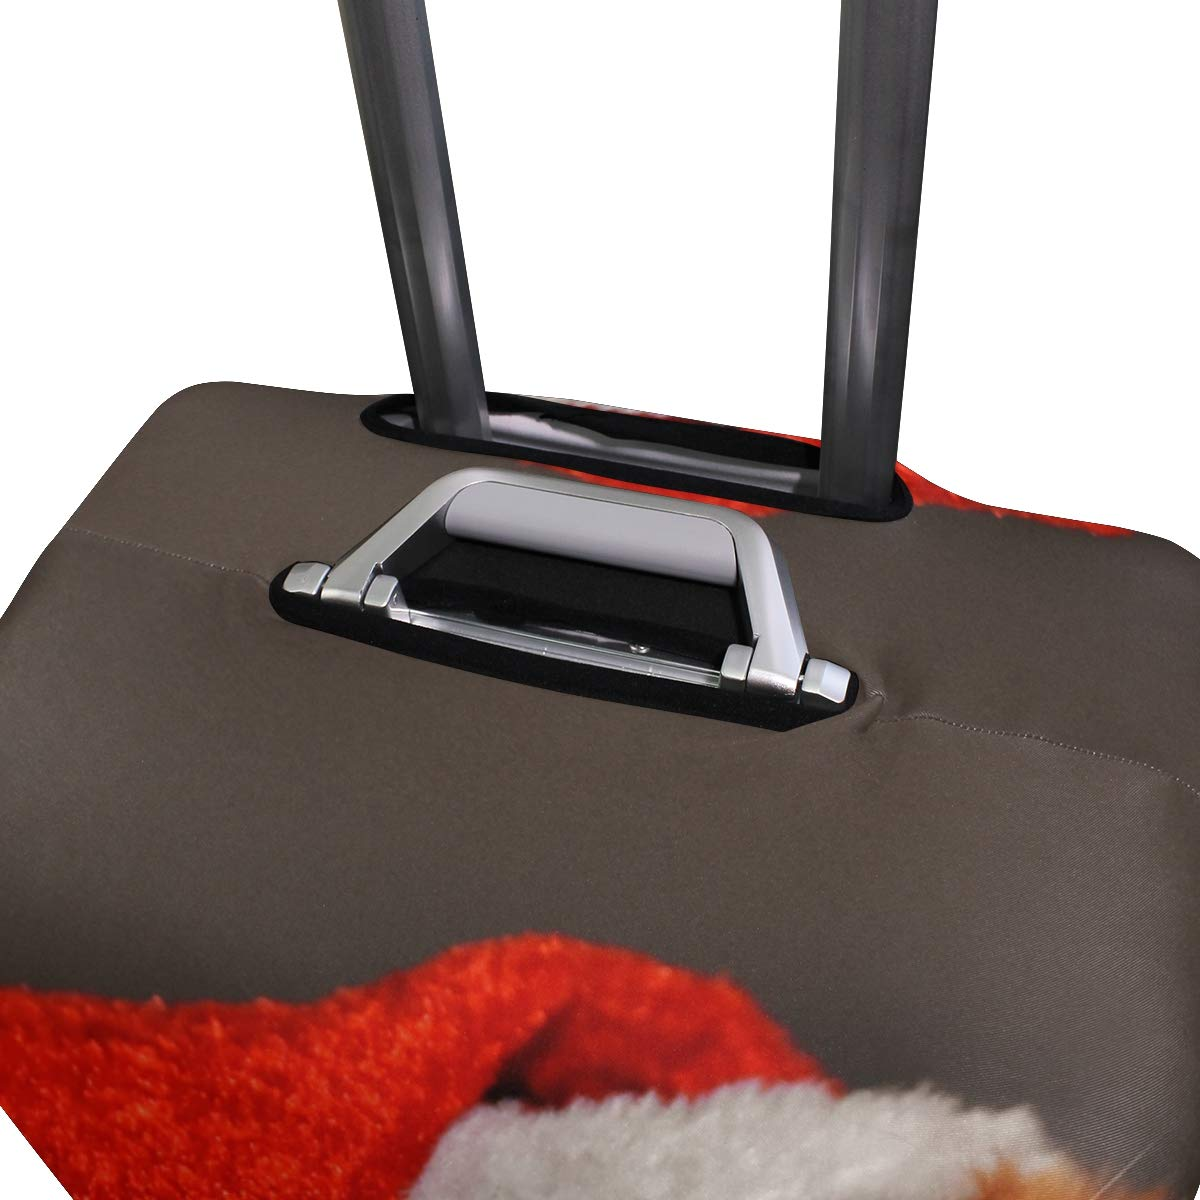 Travel Luggage Cover Cat Red Christmas Santa Hat Funny Cute Mackerel Suitcase Protector Fits 18-20 Inch Washable Baggage Covers